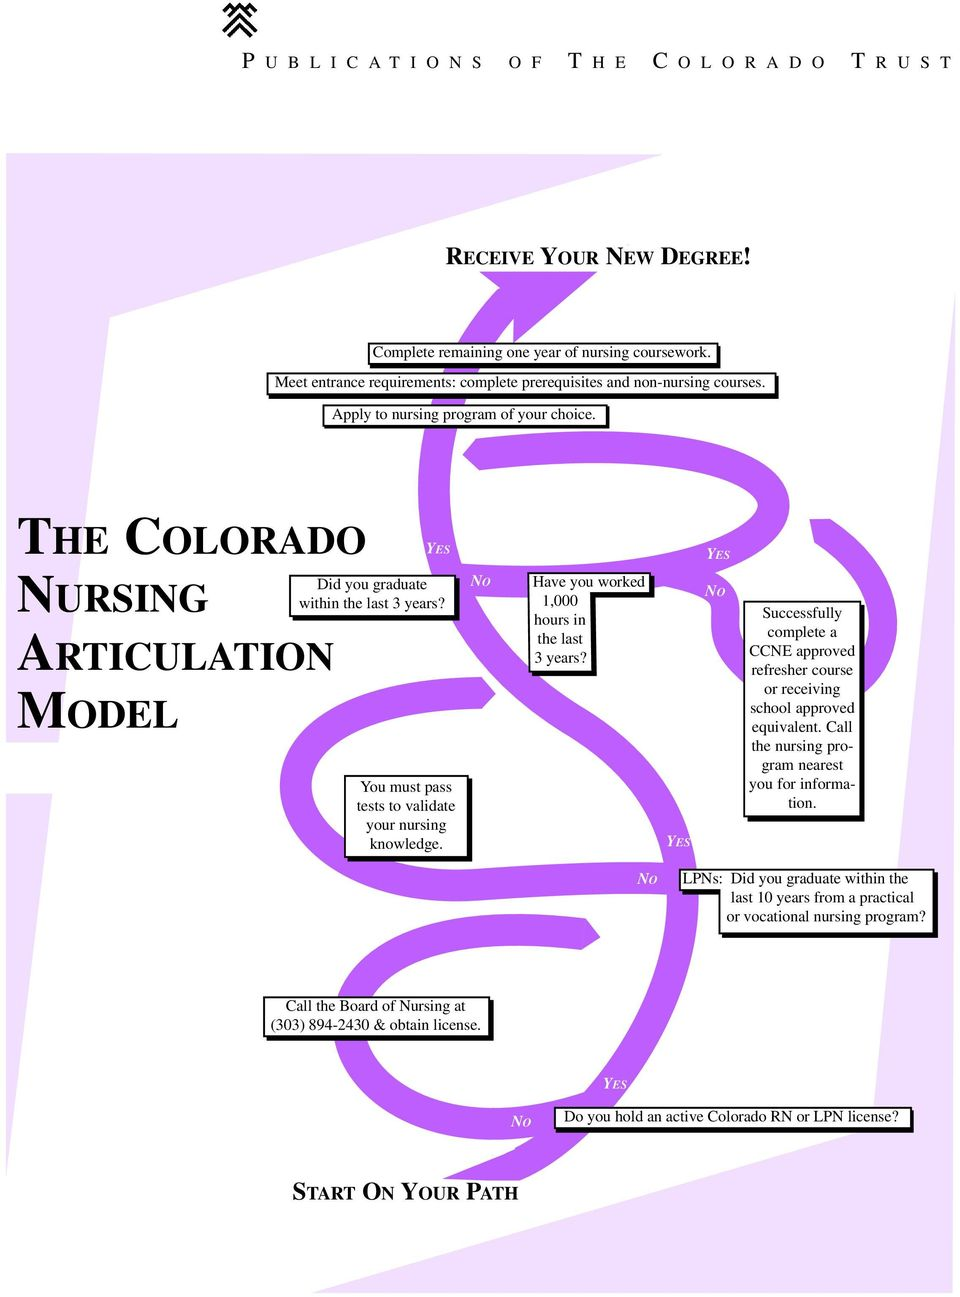 THE COLORADO YES YES NURSING ARTICULATION MODEL: 2000-2005 Did you graduate within the last 3 years? You must pass tests to validate your nursing knowledge.